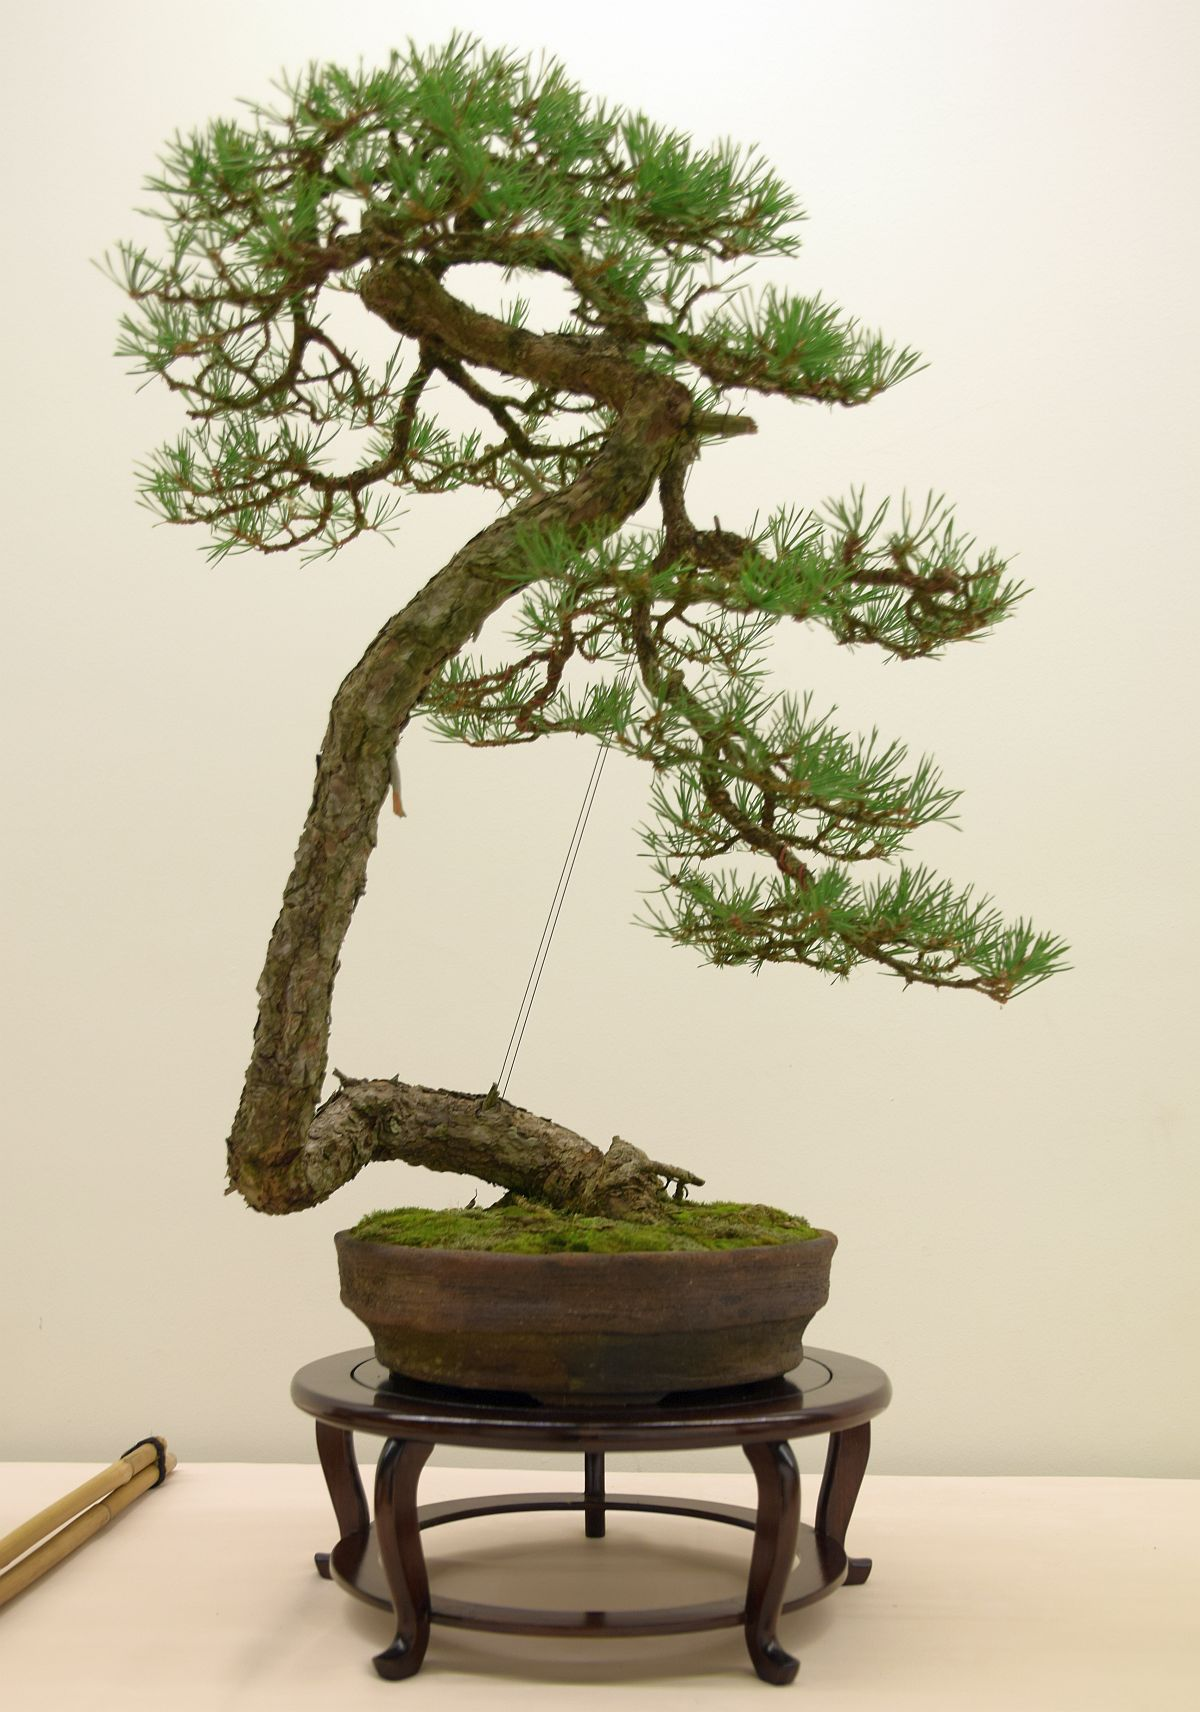 euk-bonsai-ten-2016-club-bonsai-005